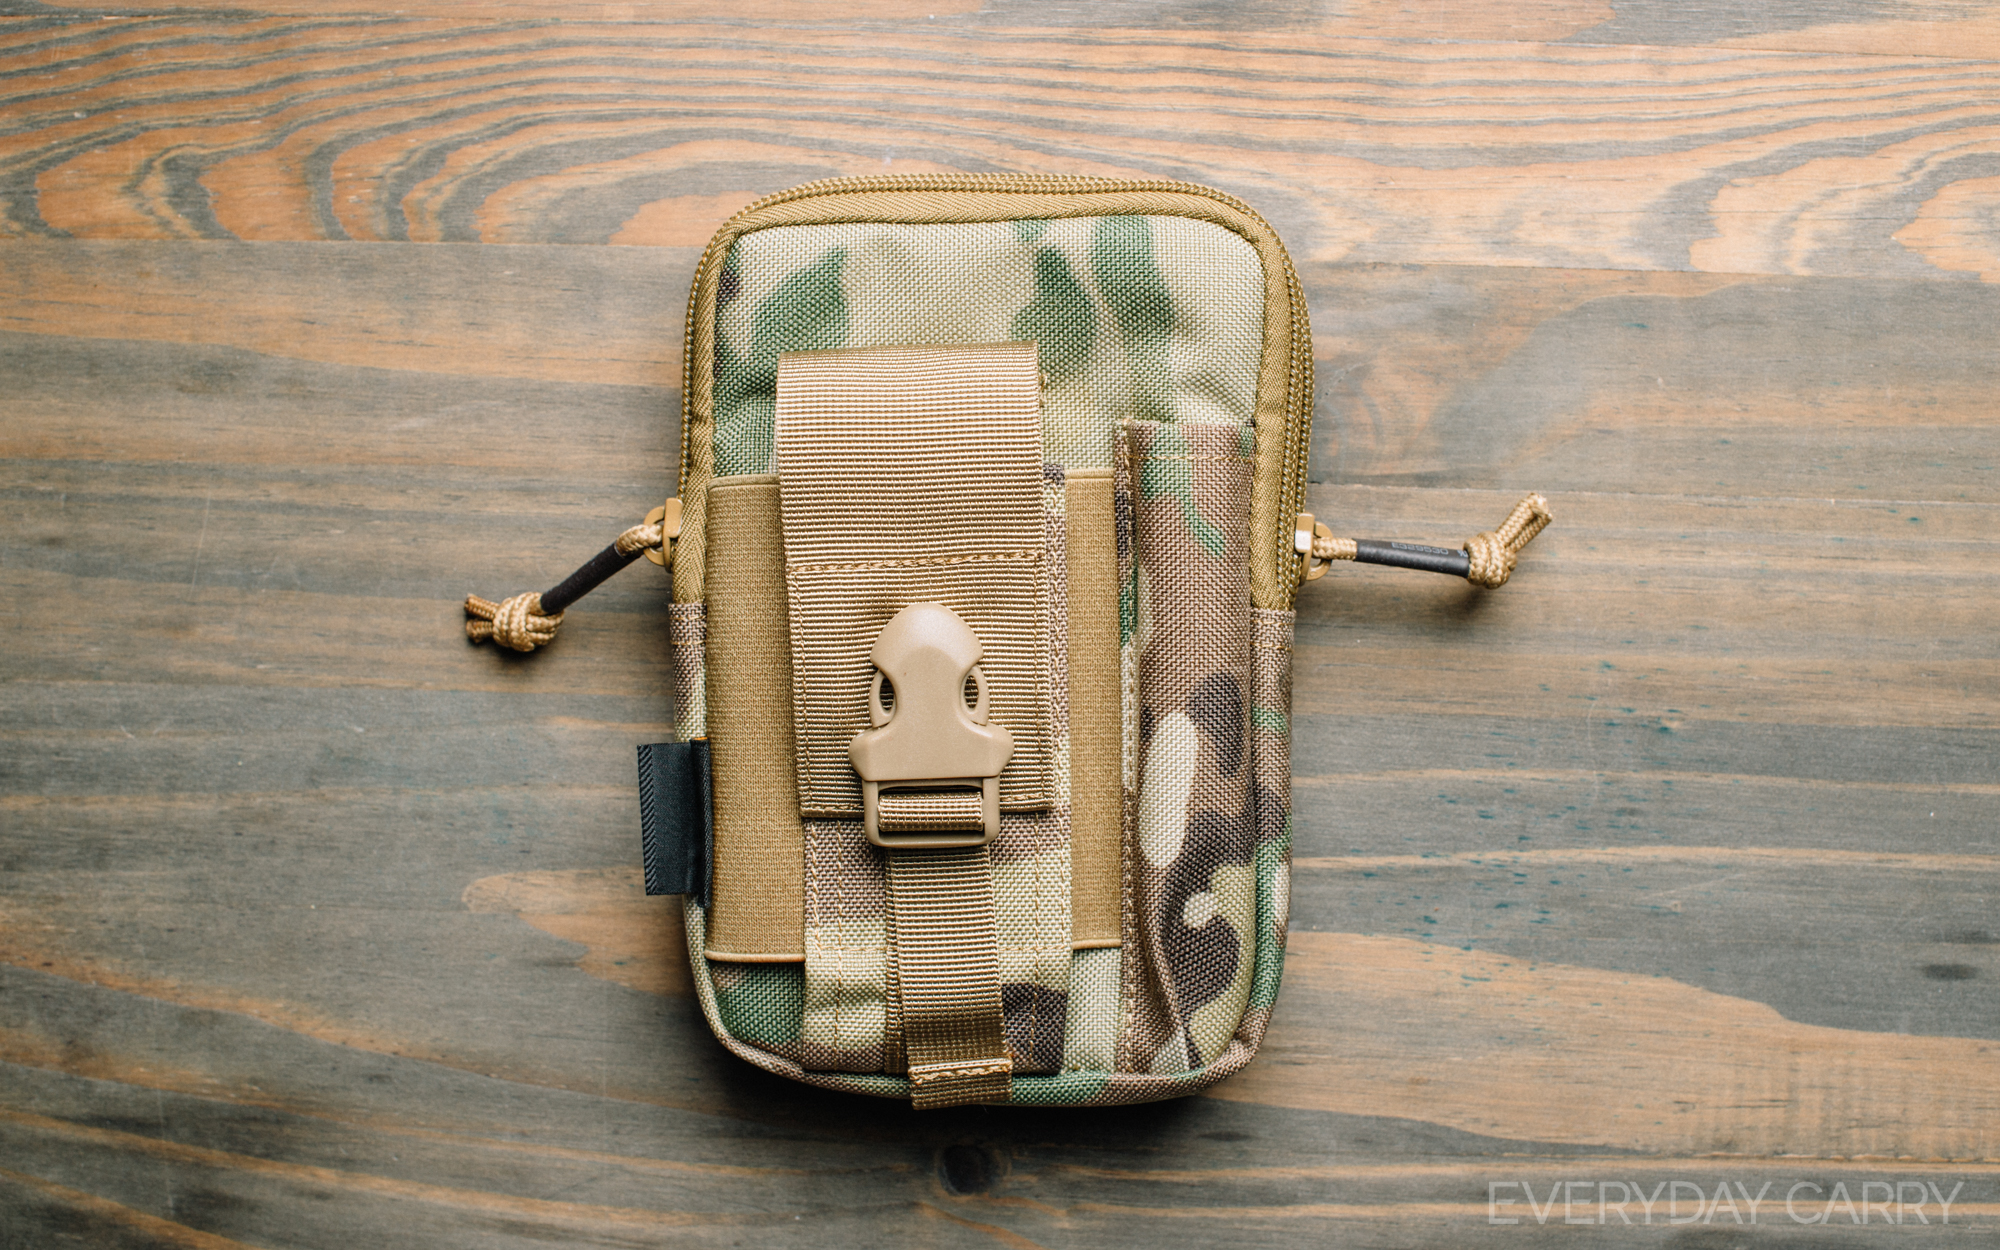 The Best Everyday Carry Pouch Organizers 6 In 1 Secret Bag Organiser Bgo 15 Reebow Gear Utility Holster As Seen Edwards Edc